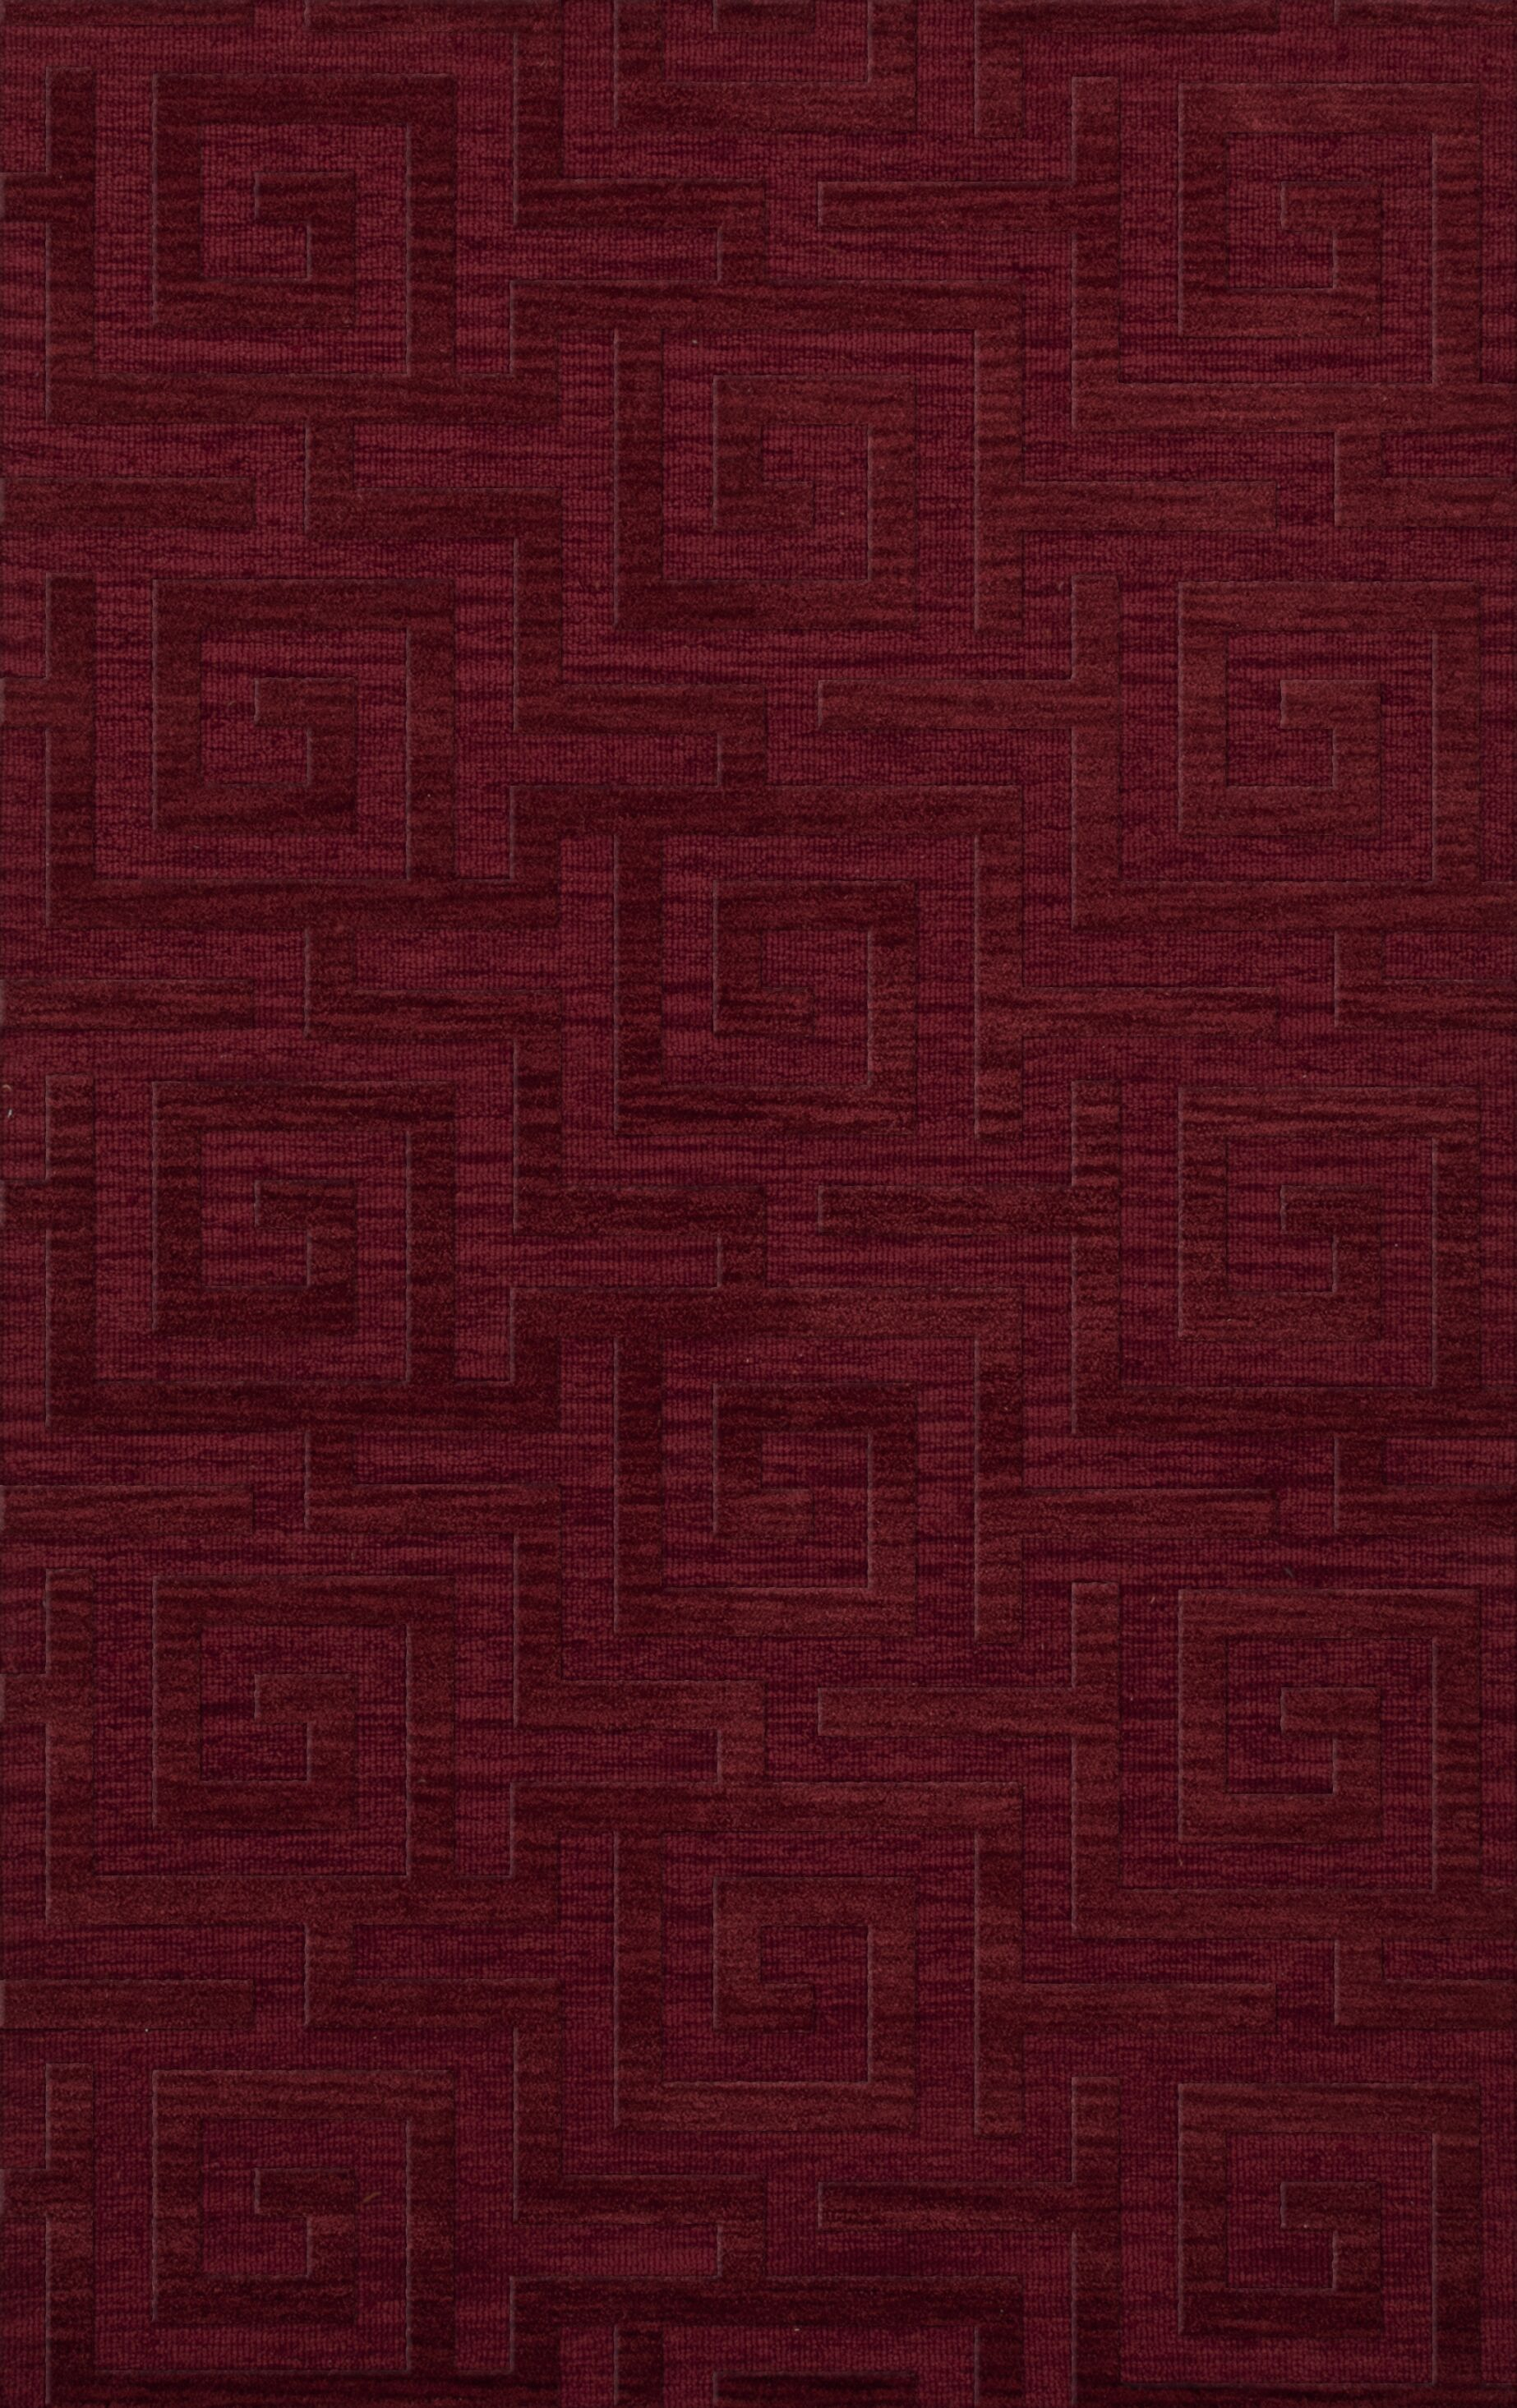 Dover Tufted Wool Rich Red Area Rug Rug Size: Rectangle 4' x 6'